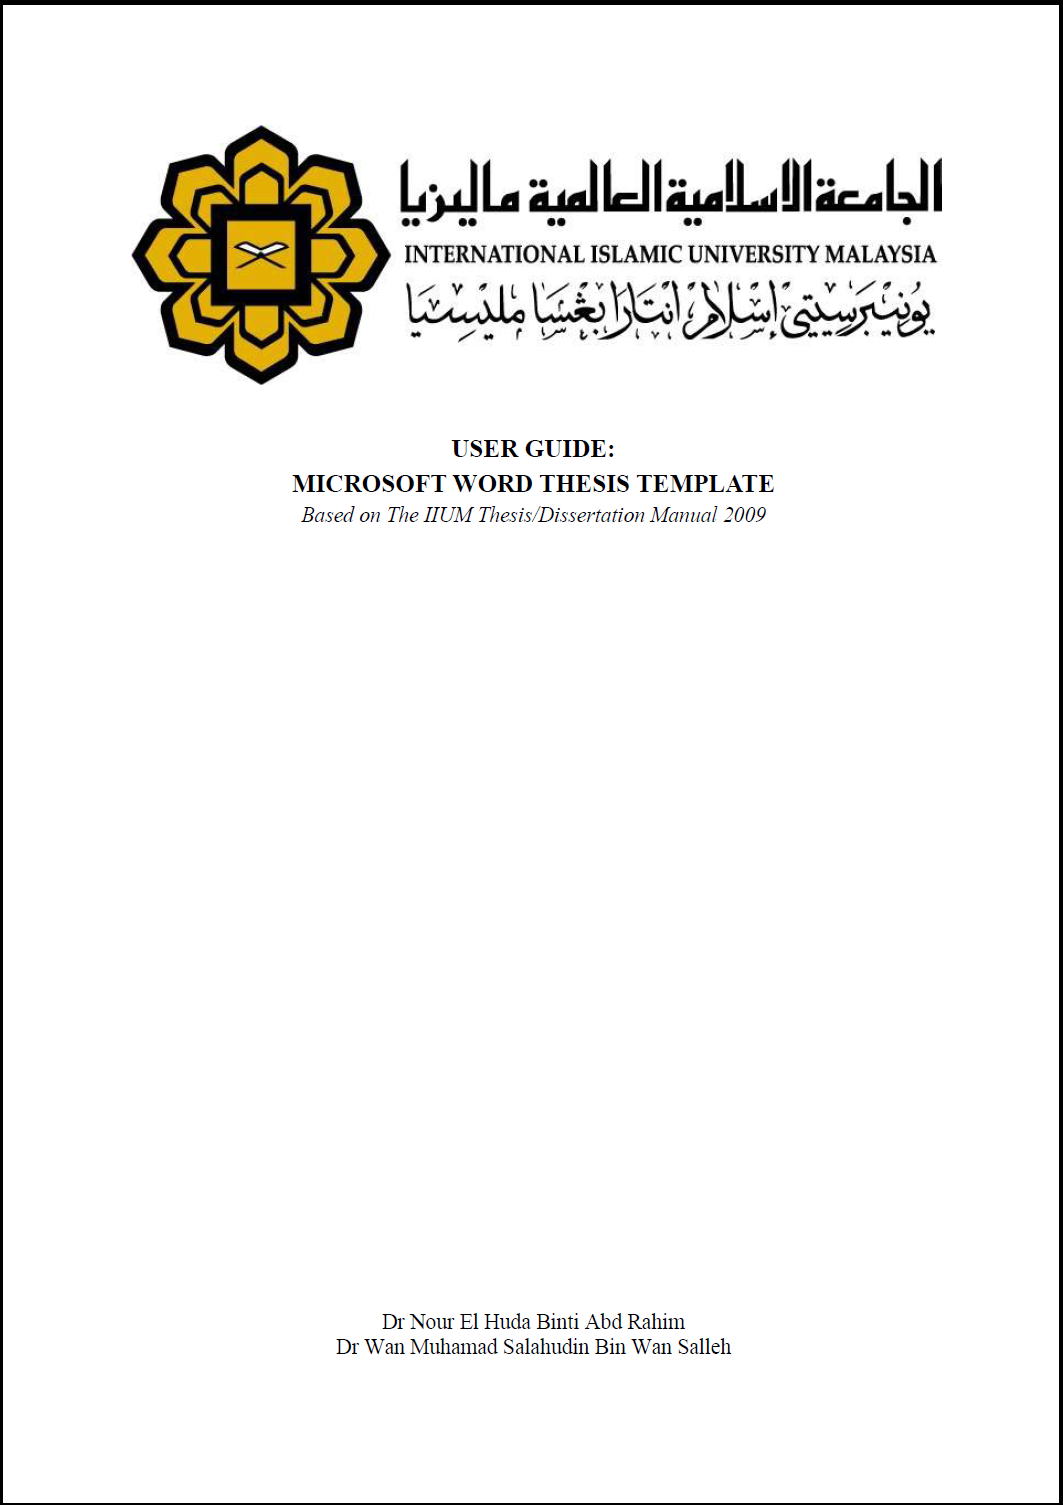 iium thesis manual